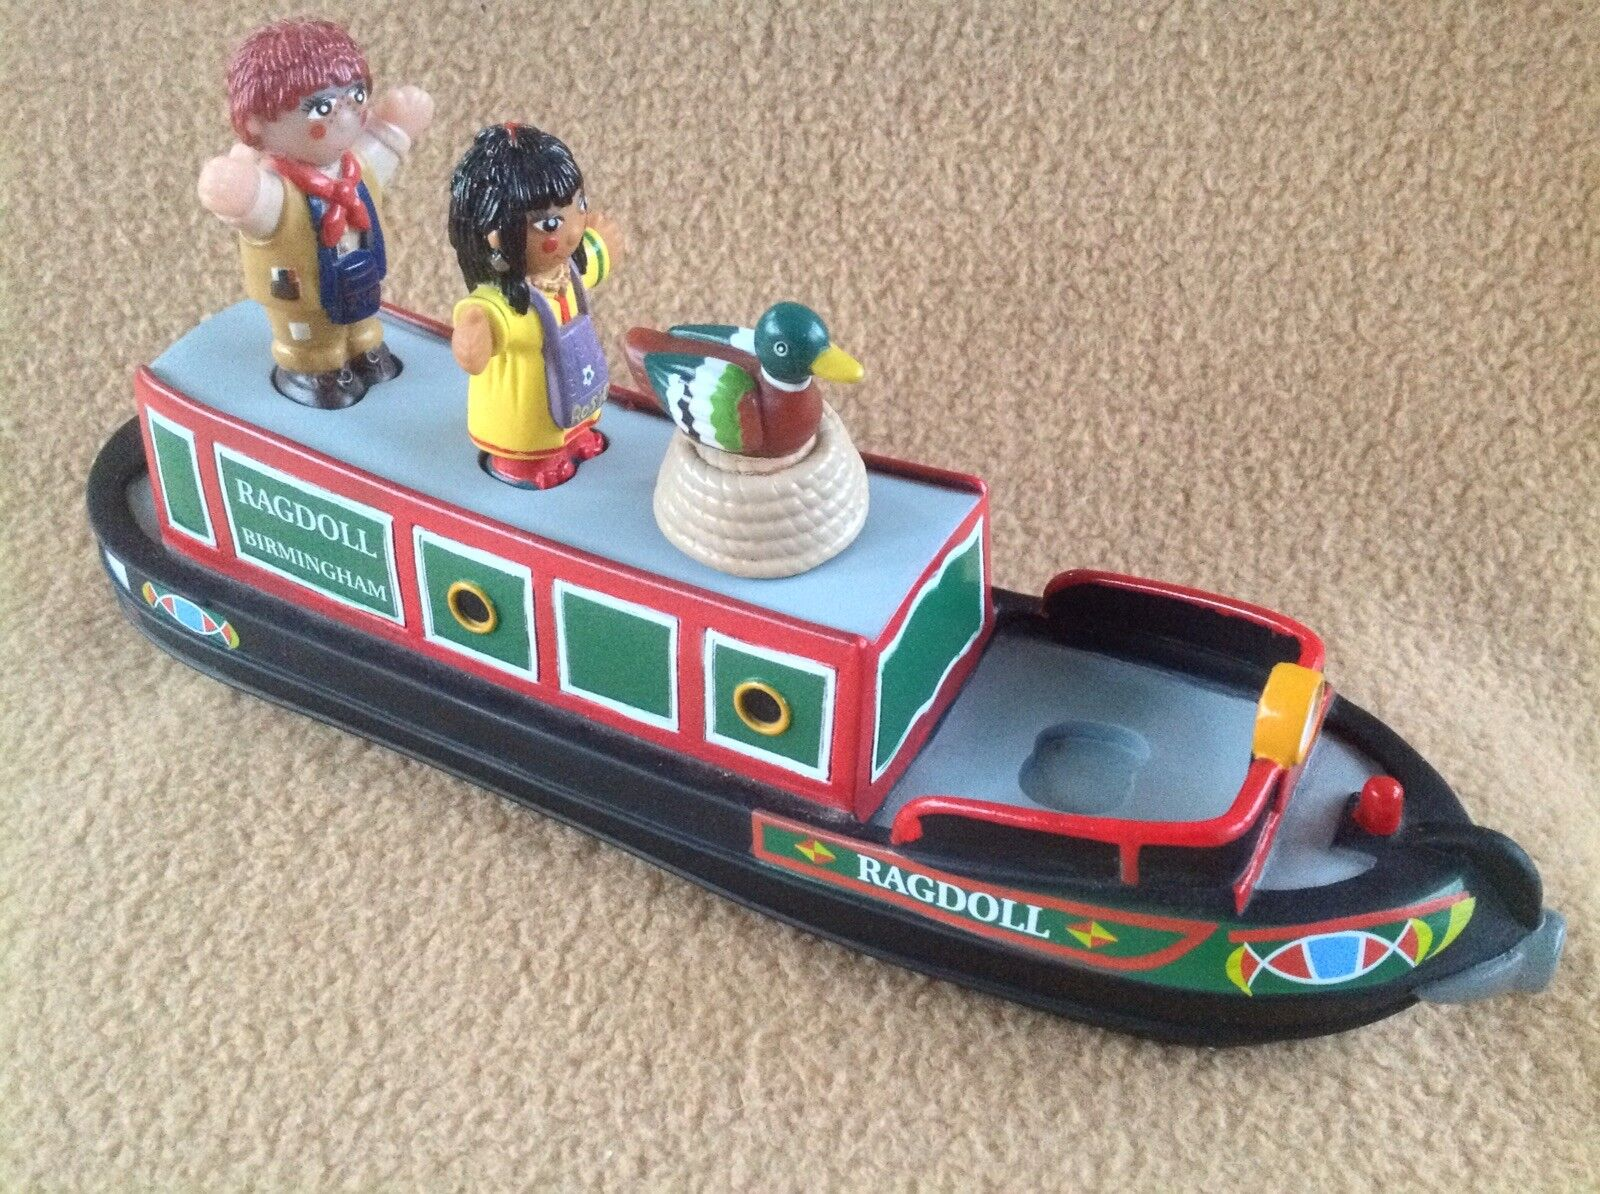 Rosie & Jim Canal Narrowboat Barge Boat with Figures Playset - Complete - Rare